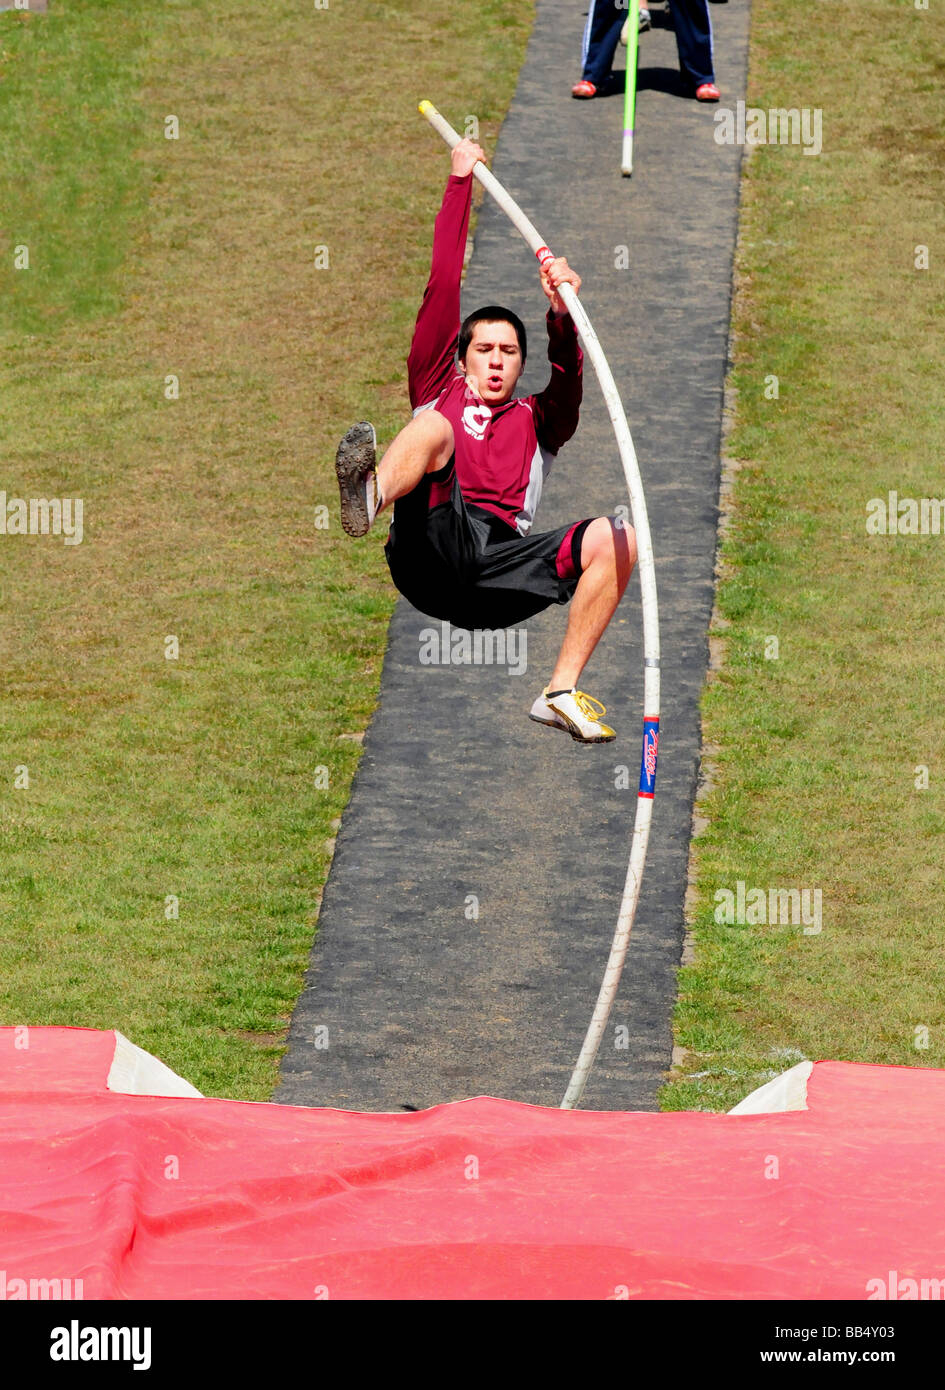 A pole vaulter makes his approach - Stock Image